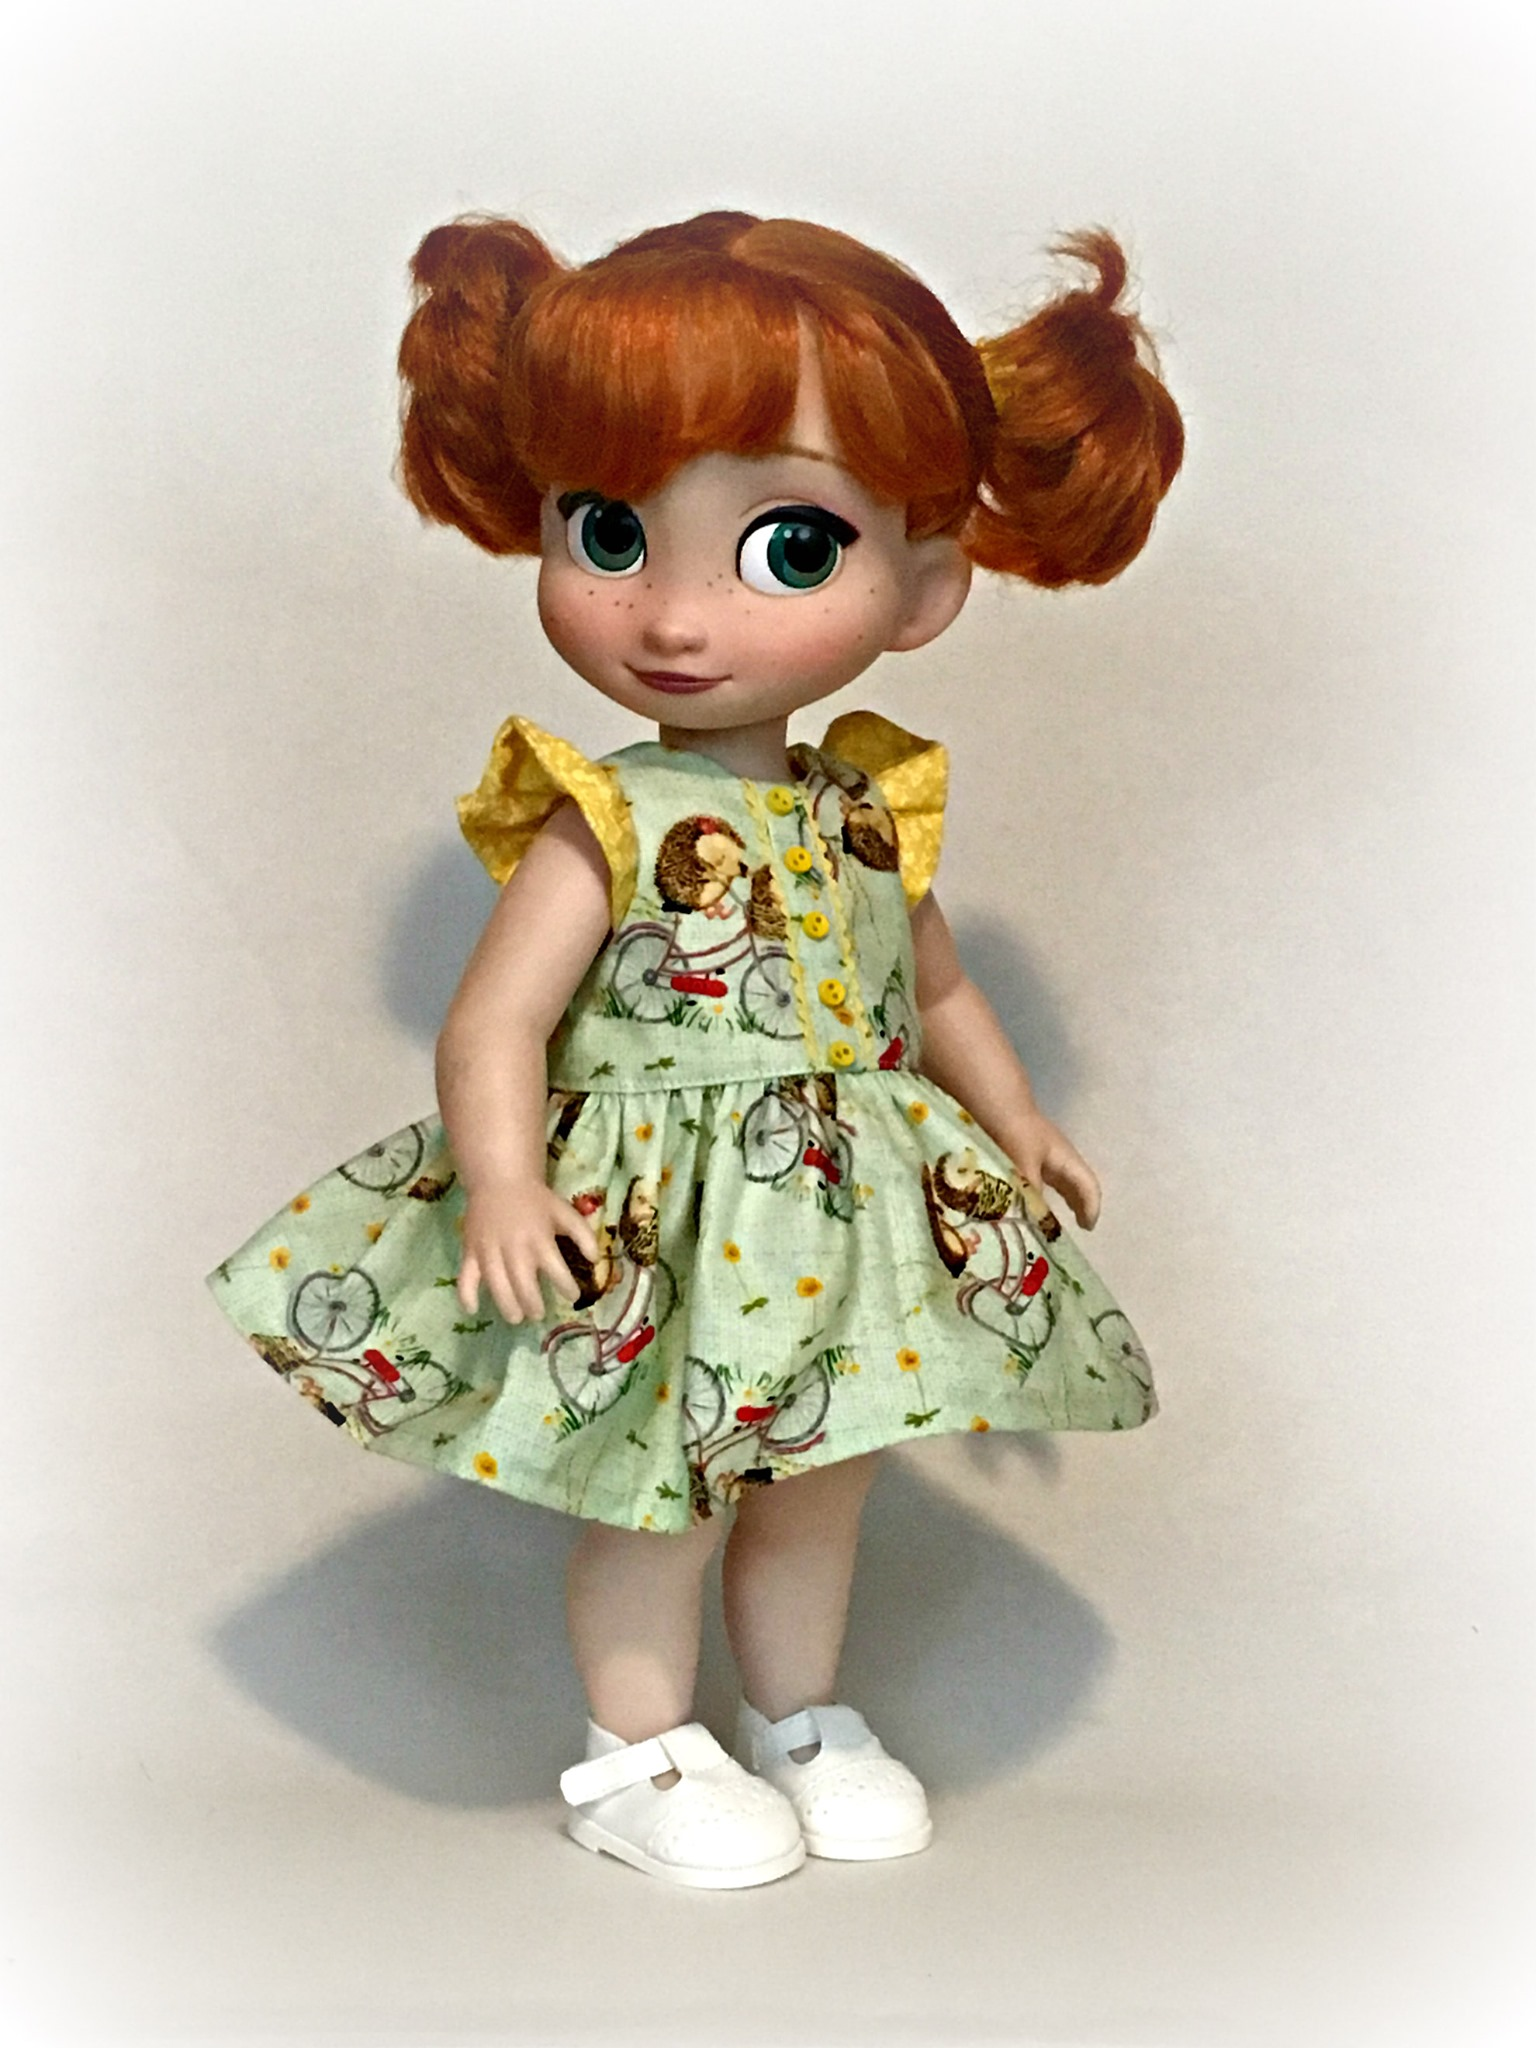 Make a doll dress for your disney animators' dolls with this easy PDF sewing pattern by Oh Sew Kat! Easy to sew photo printable tutorial, download and sew today. Find more patterns in the Oh Sew Kat! Etsy Shop.